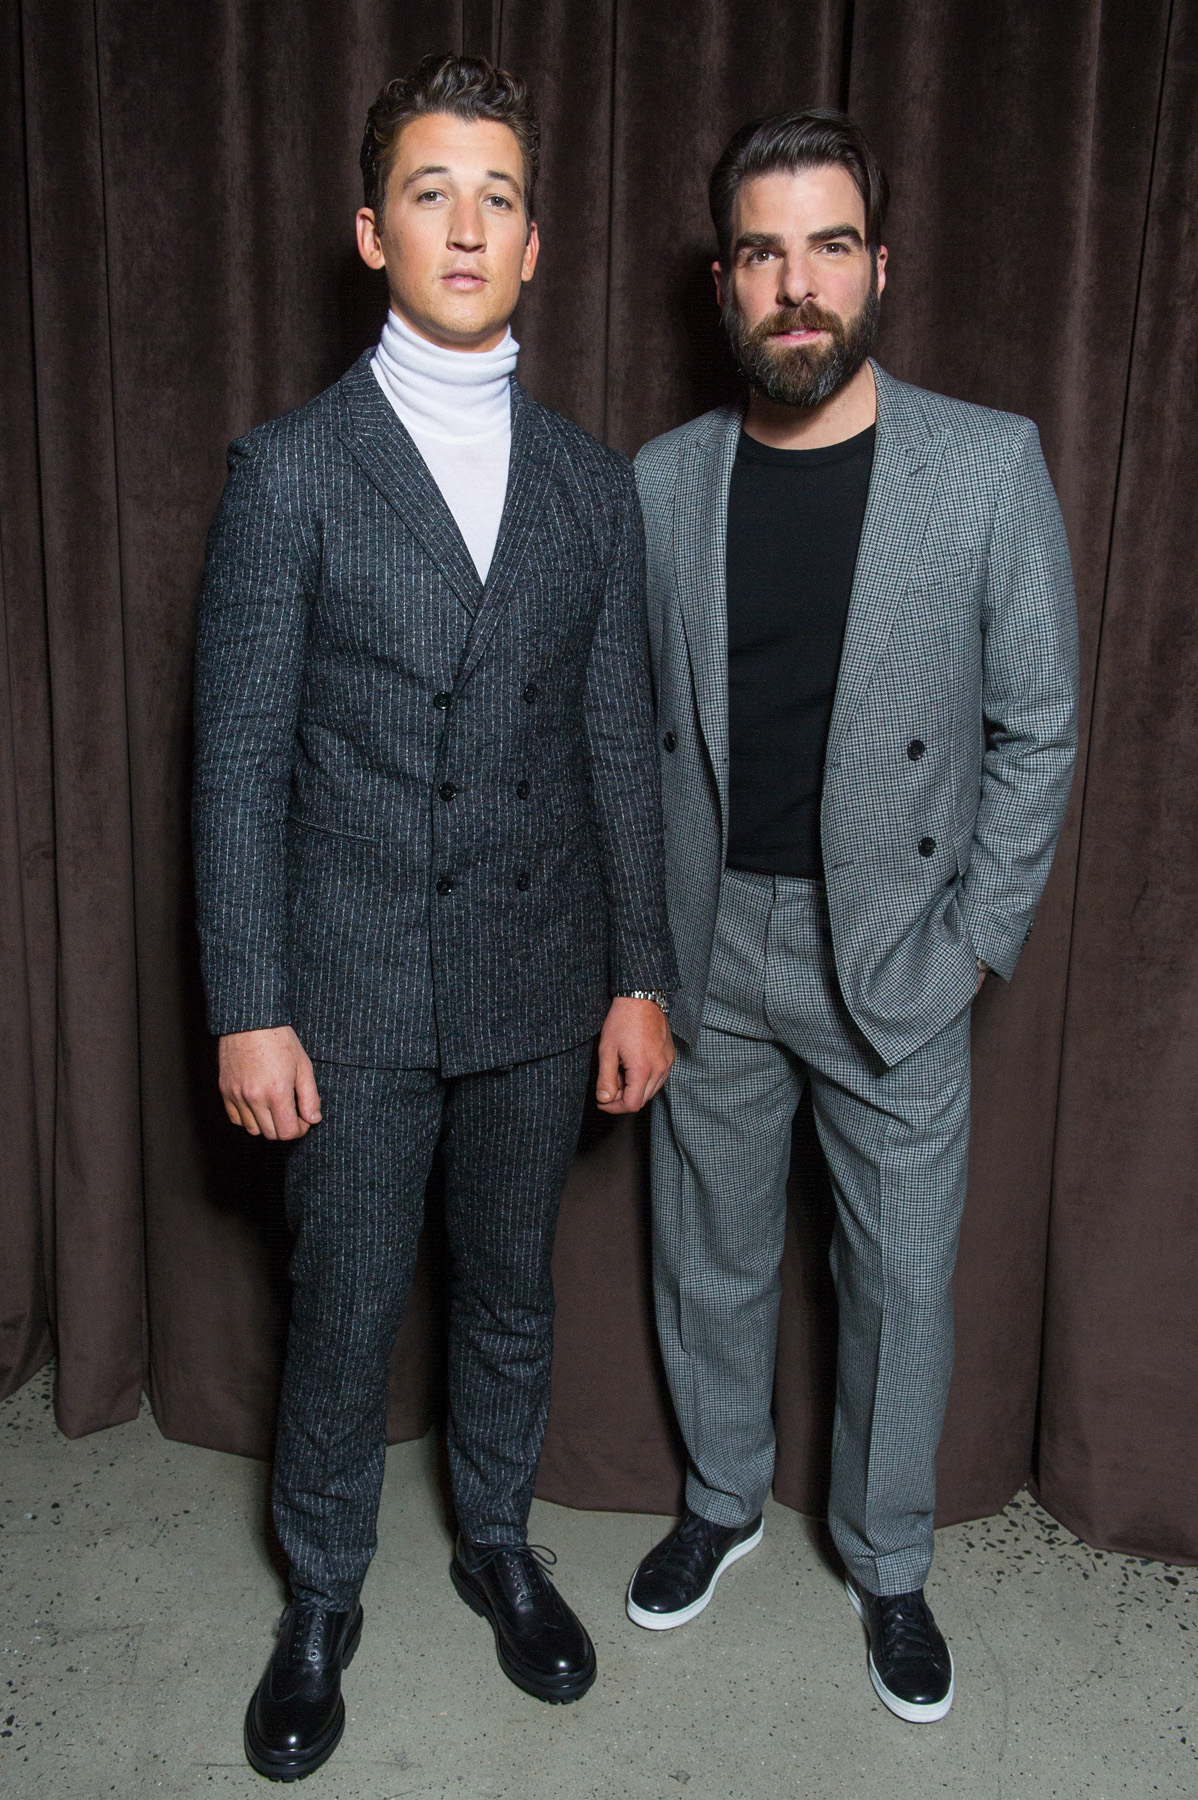 Miles Teller in HUGO BOSS & Zachary Quinto in HUGO BOSS at the BOSS Menswear Fall/Winter 2017 collection presentation